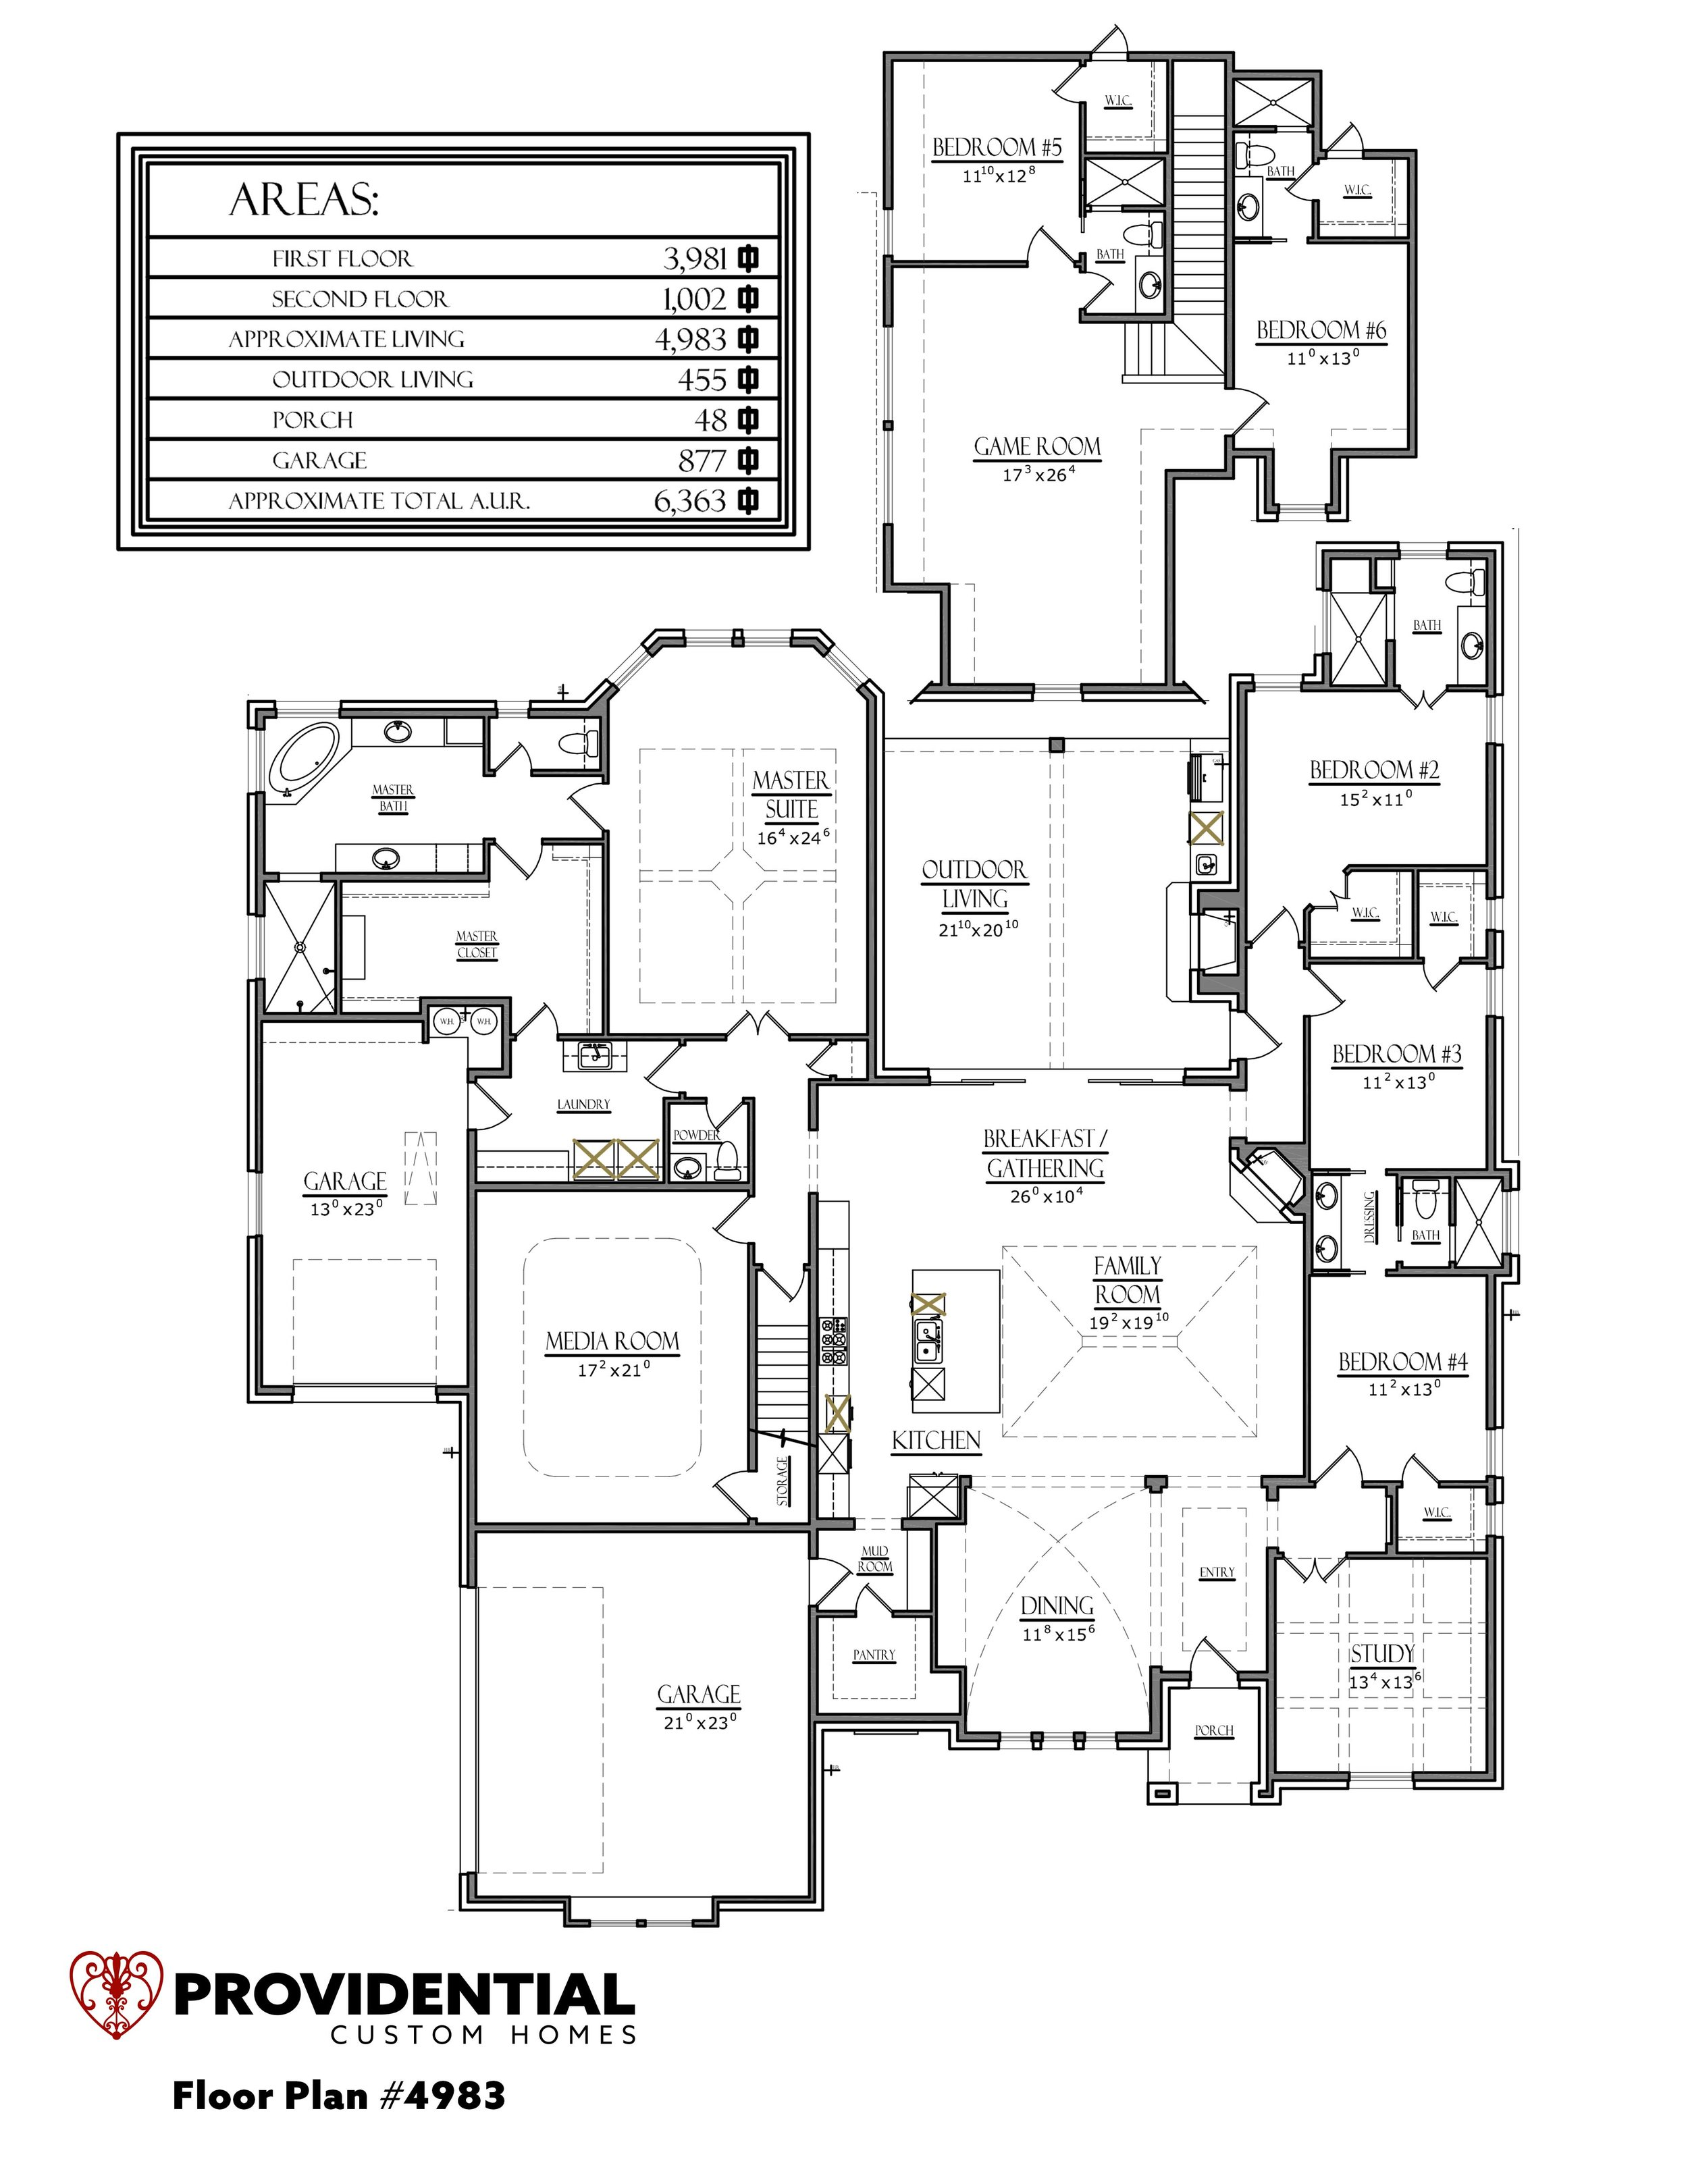 The FLOOR PLAN #4983.jpg